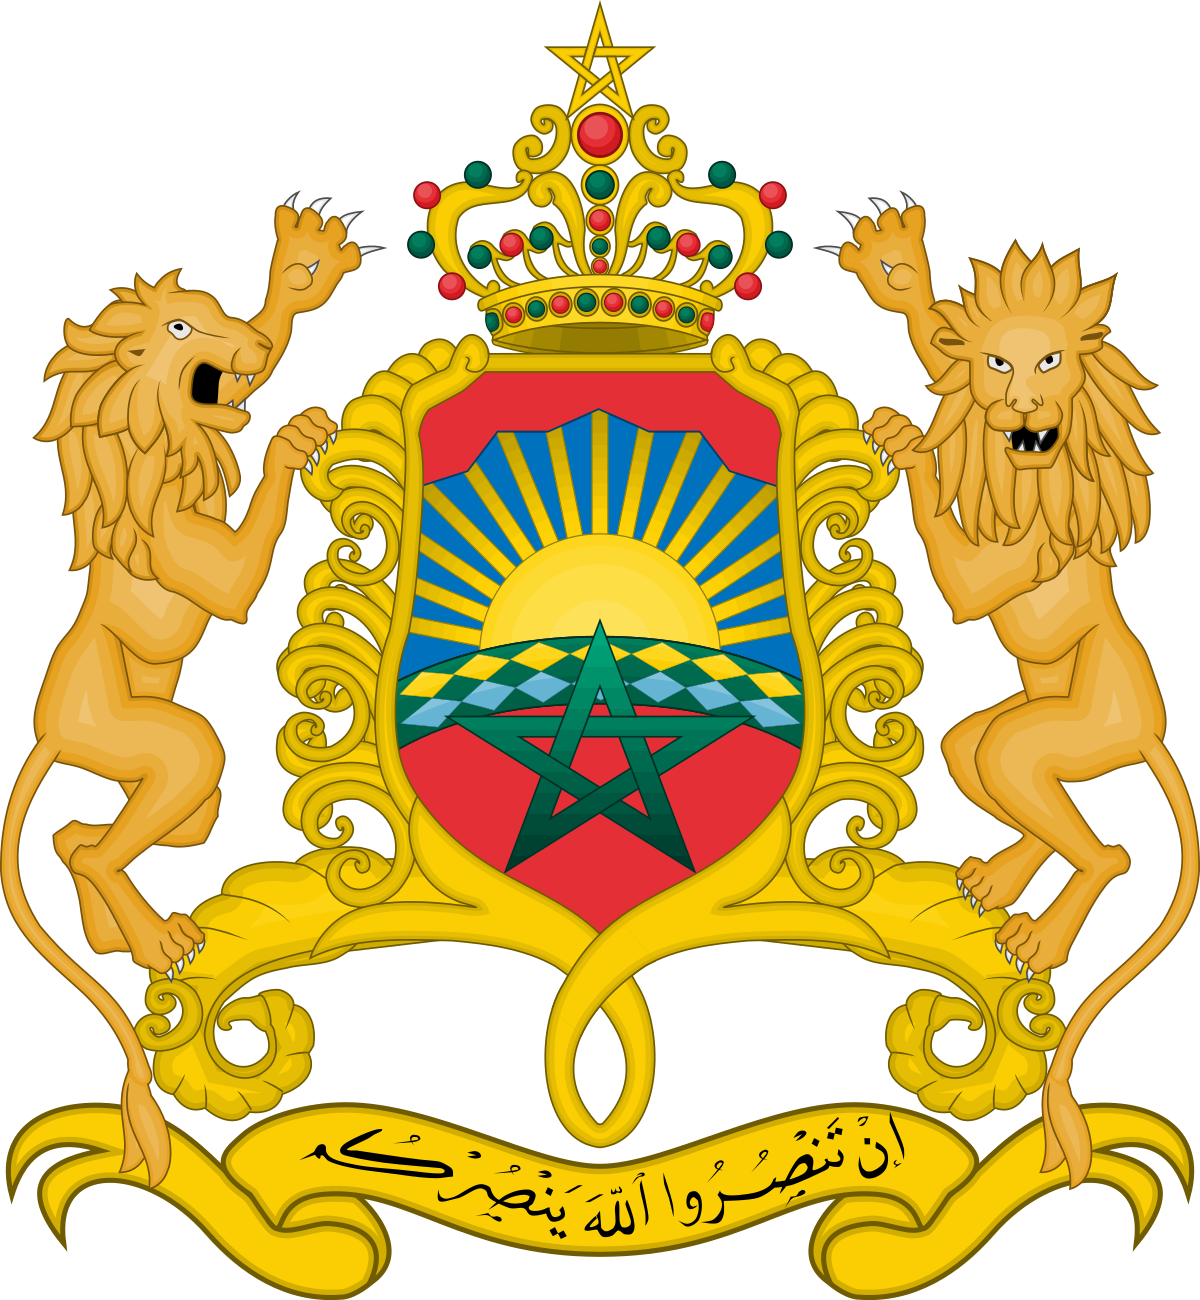 Lion & bat shield kingdom baseball clipart graphic transparent stock Coat of arms of Morocco - Wikipedia graphic transparent stock